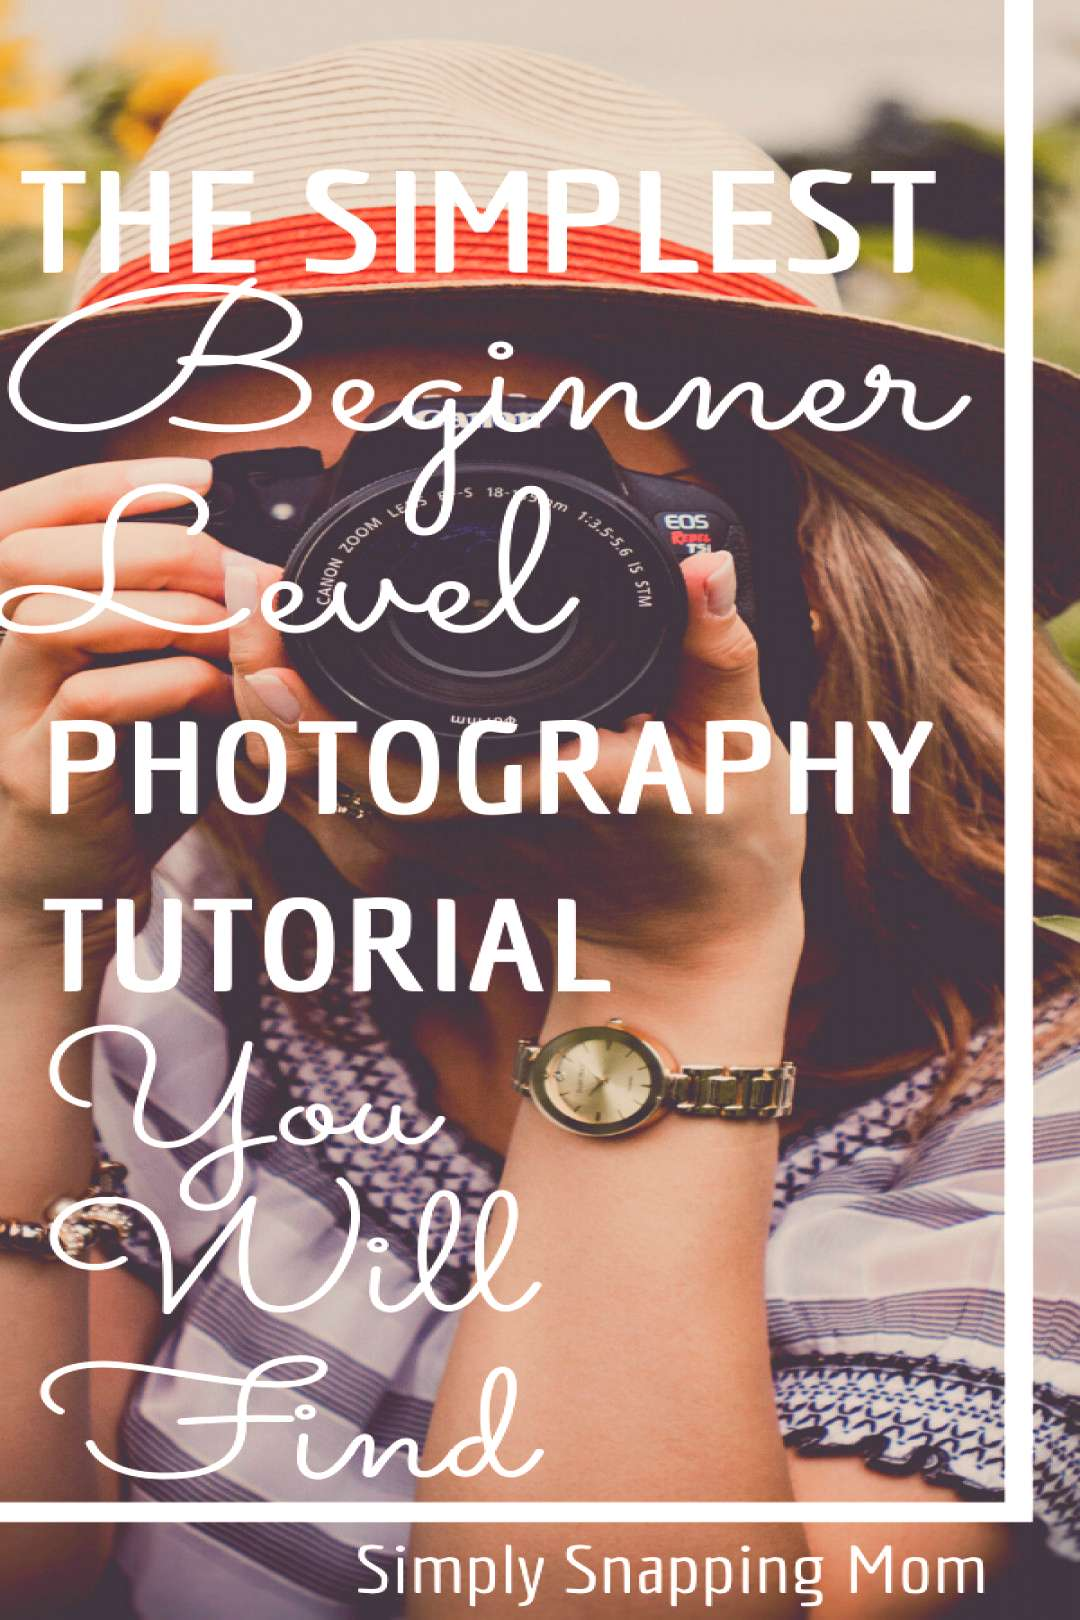 Easy Photography Tutorial for Beginners